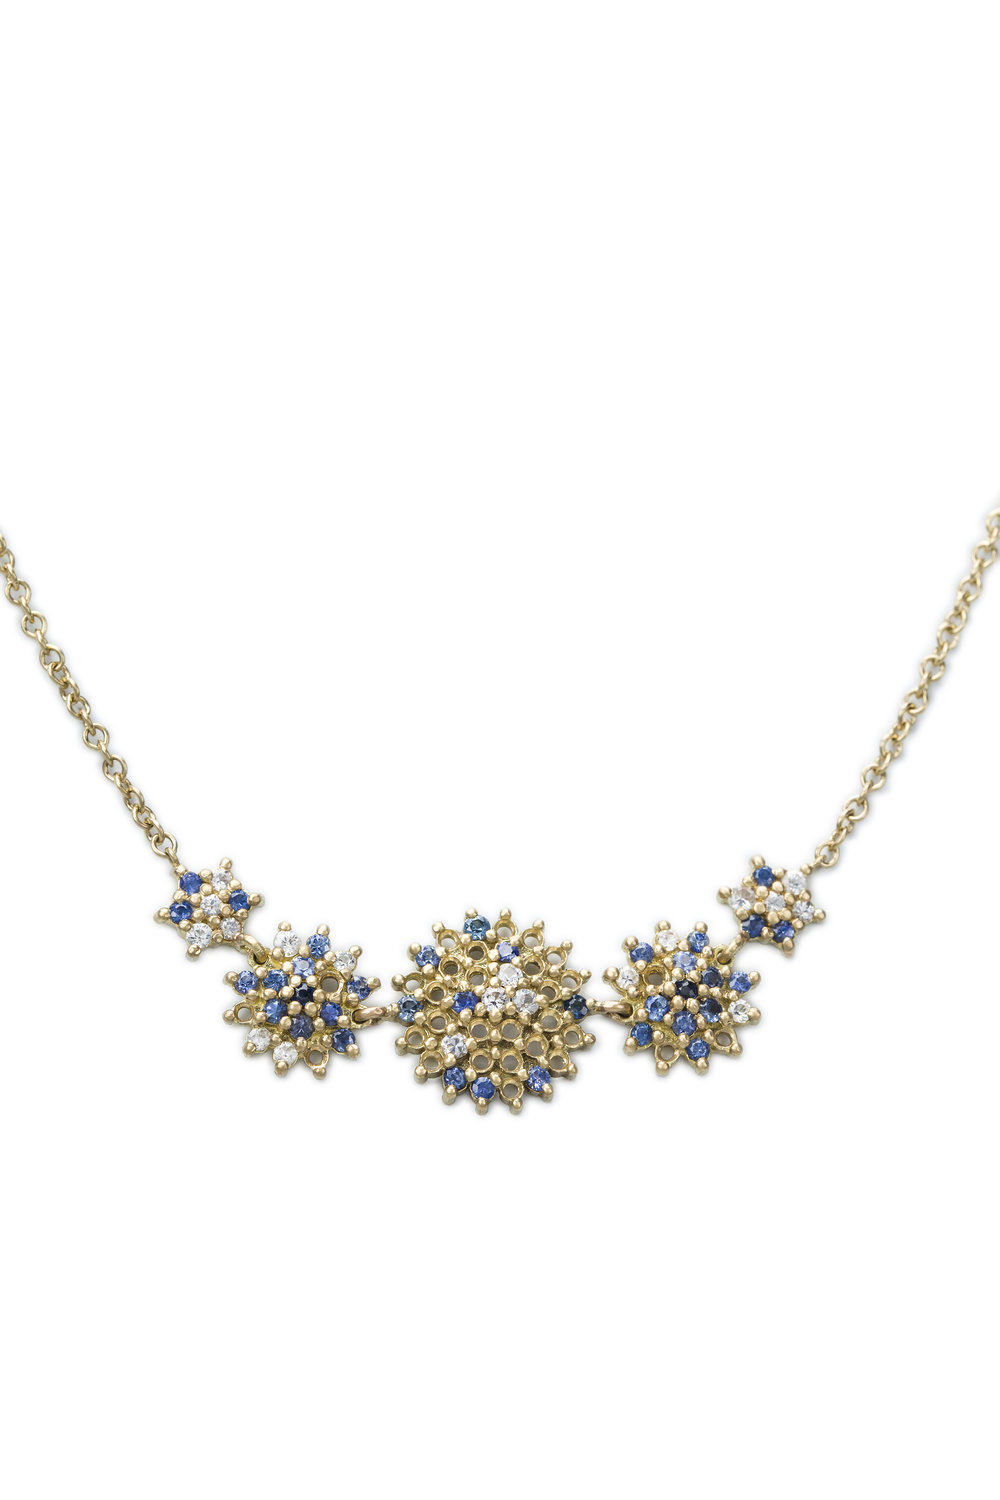 Multi coloured sapphire star five piece necklace